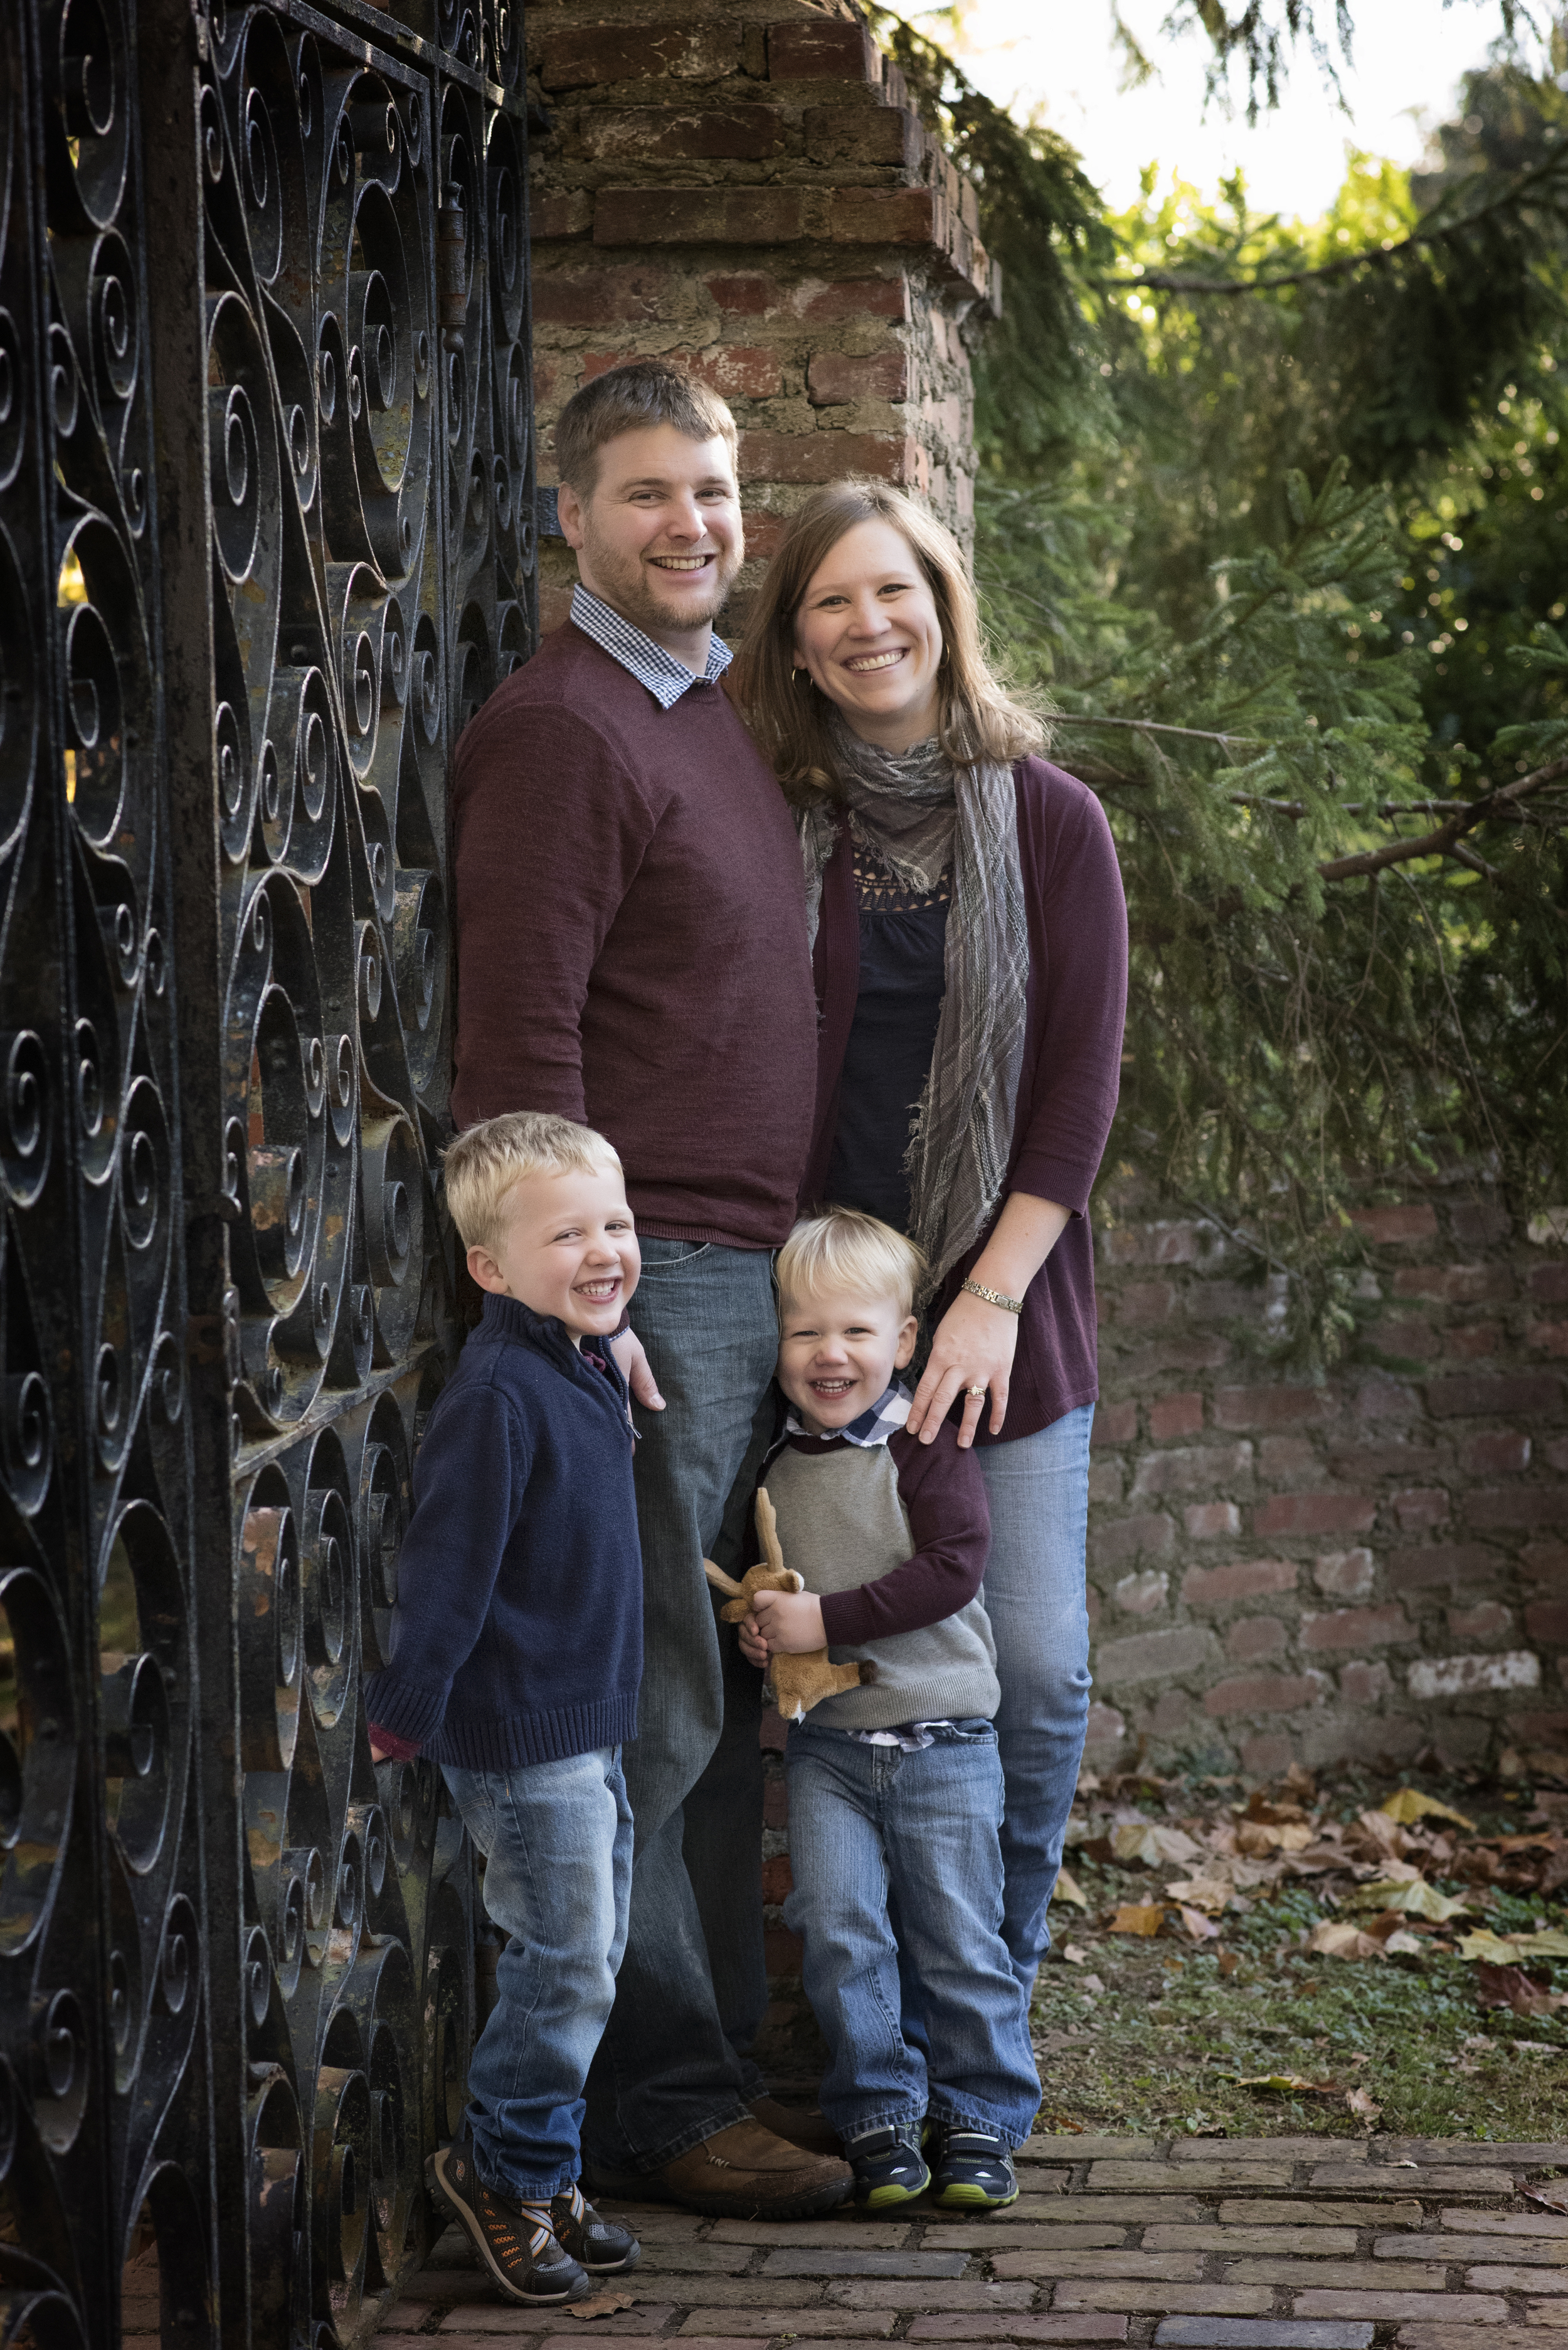 Family in front of iron gate Fall colors Kate Montaner Photography